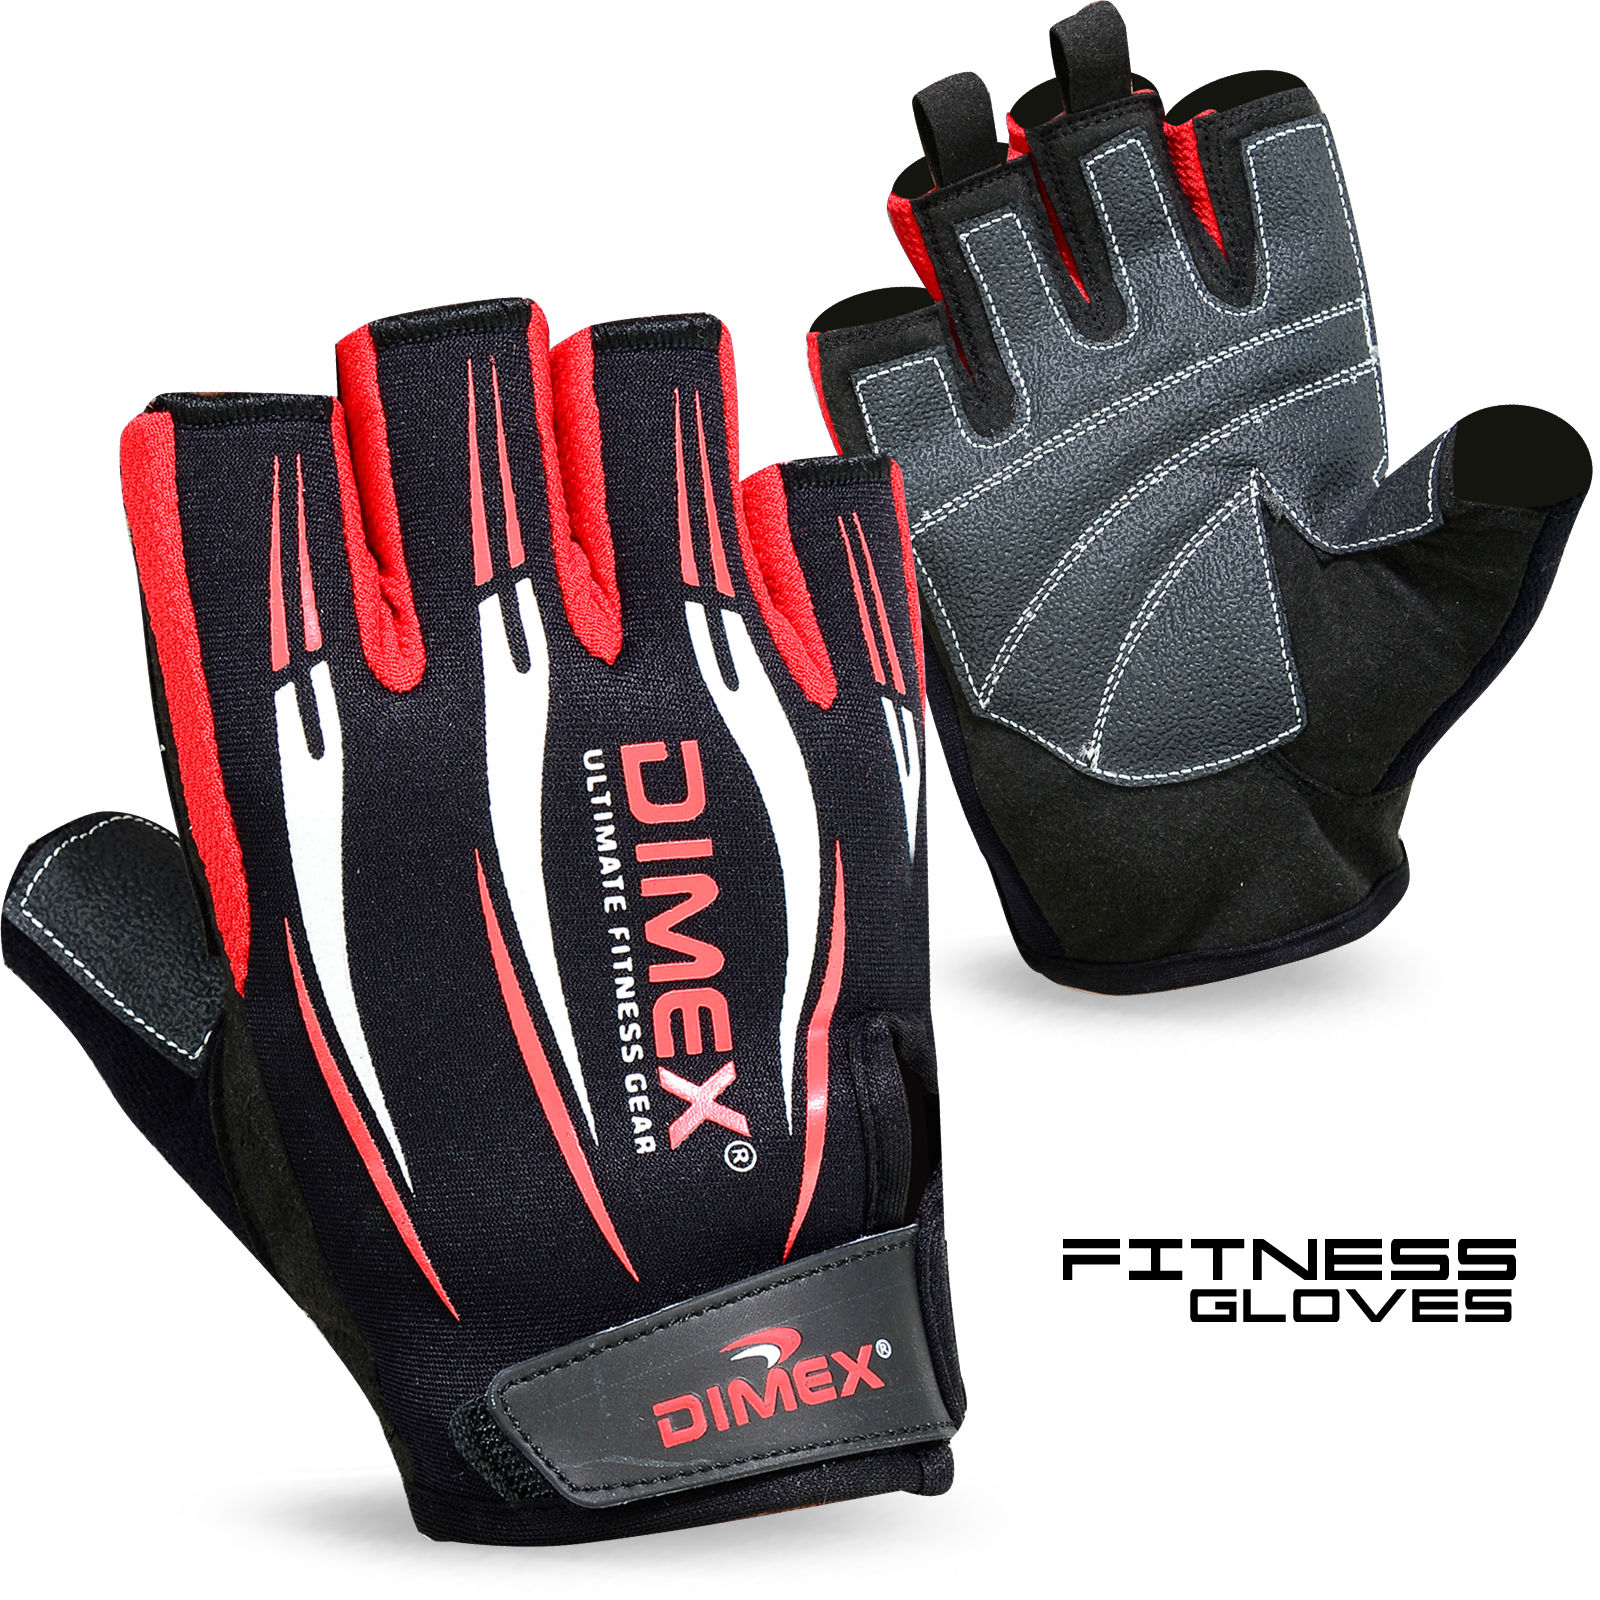 Sport Gloves Uk: Weight Lifting Gym Fitness Body Building Sports Gloves